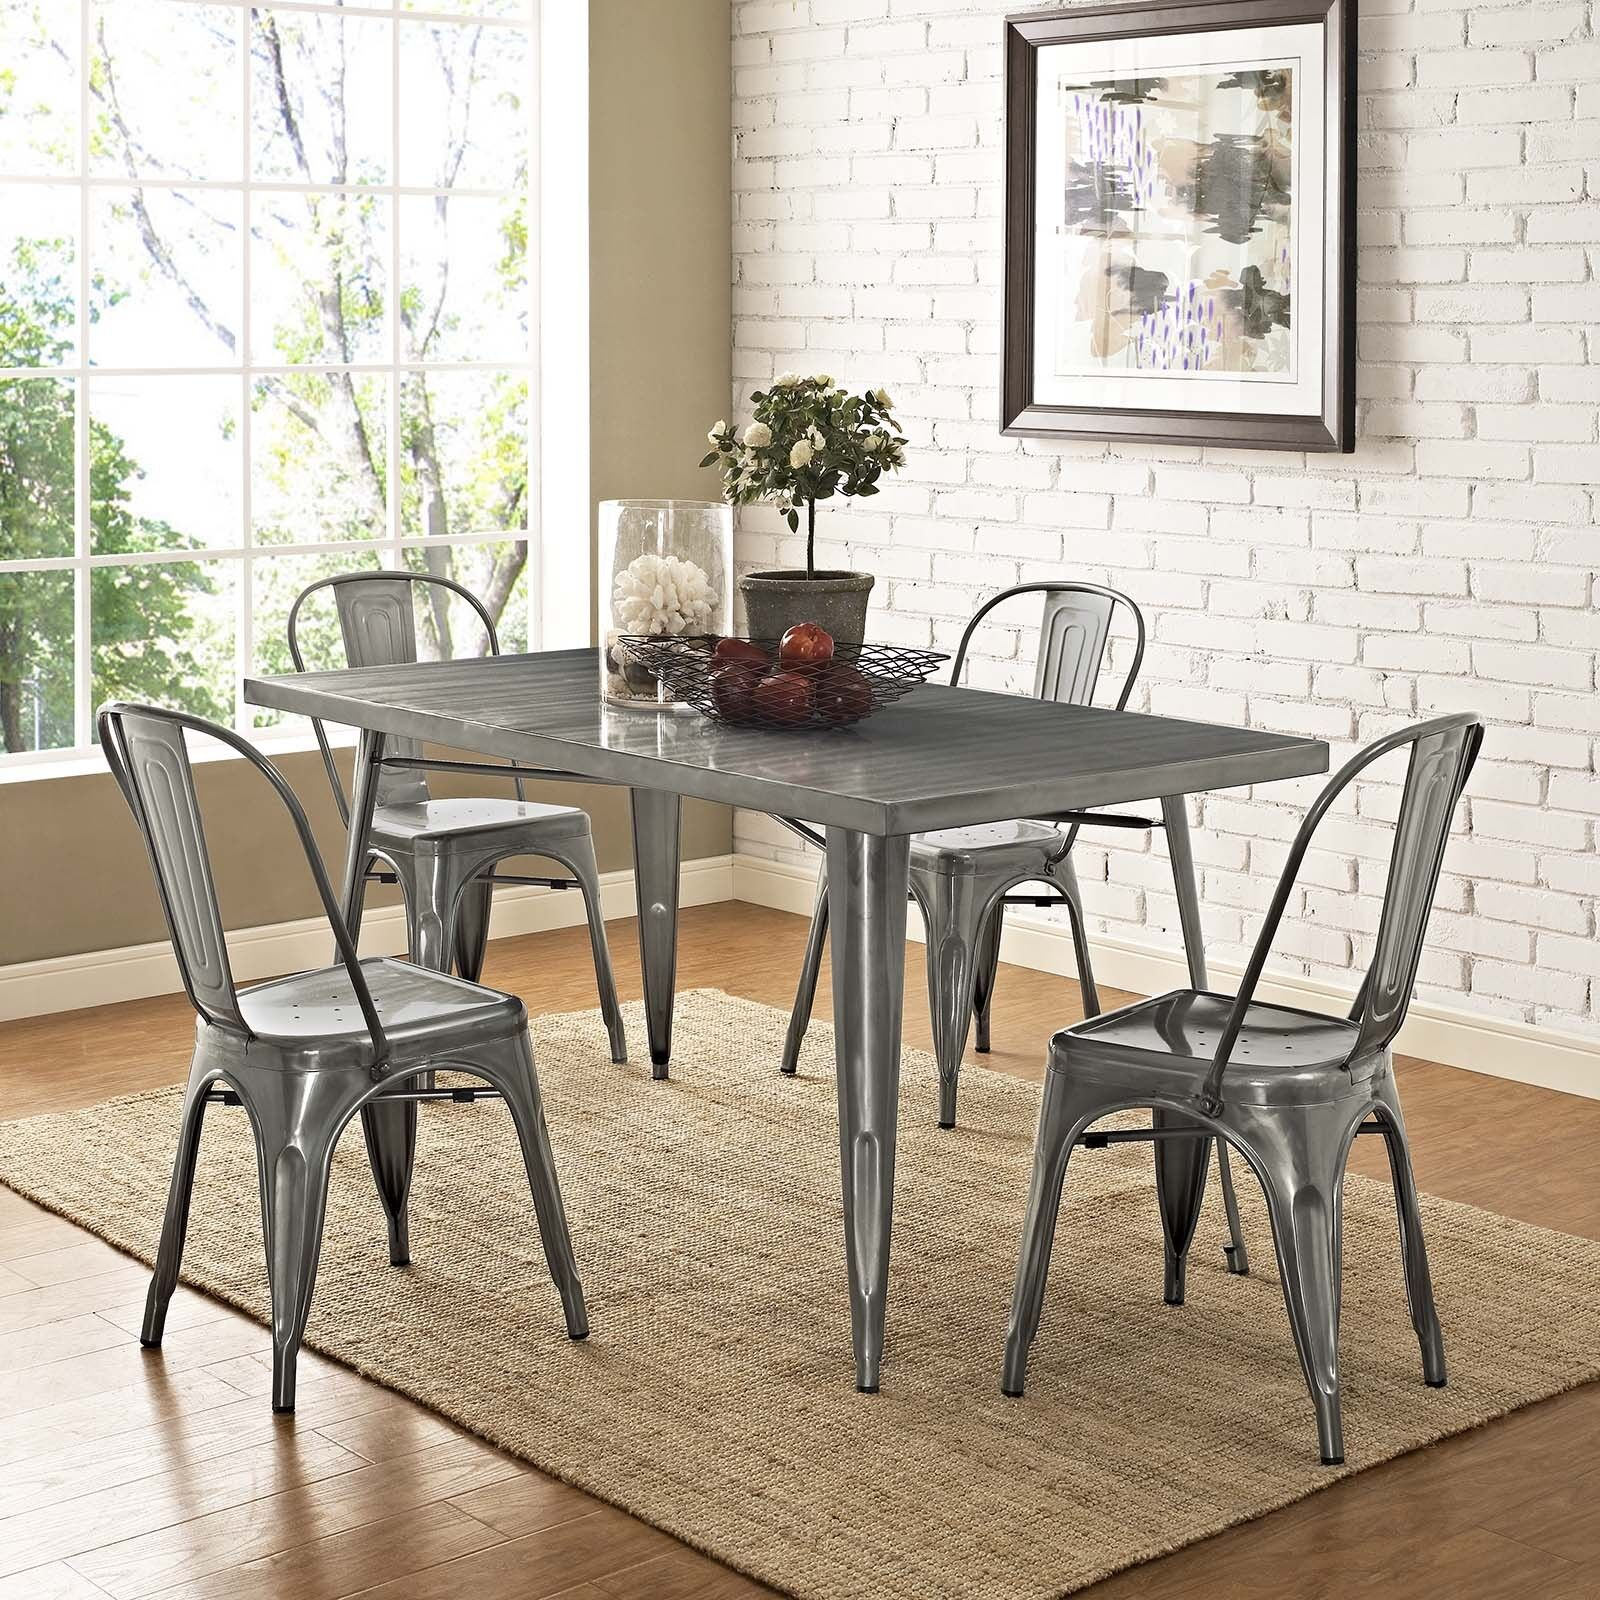 Details About Industrial Modern Tolix Style Gunmetal Aluminum Bistro Dining  Chairs   Set Of 4